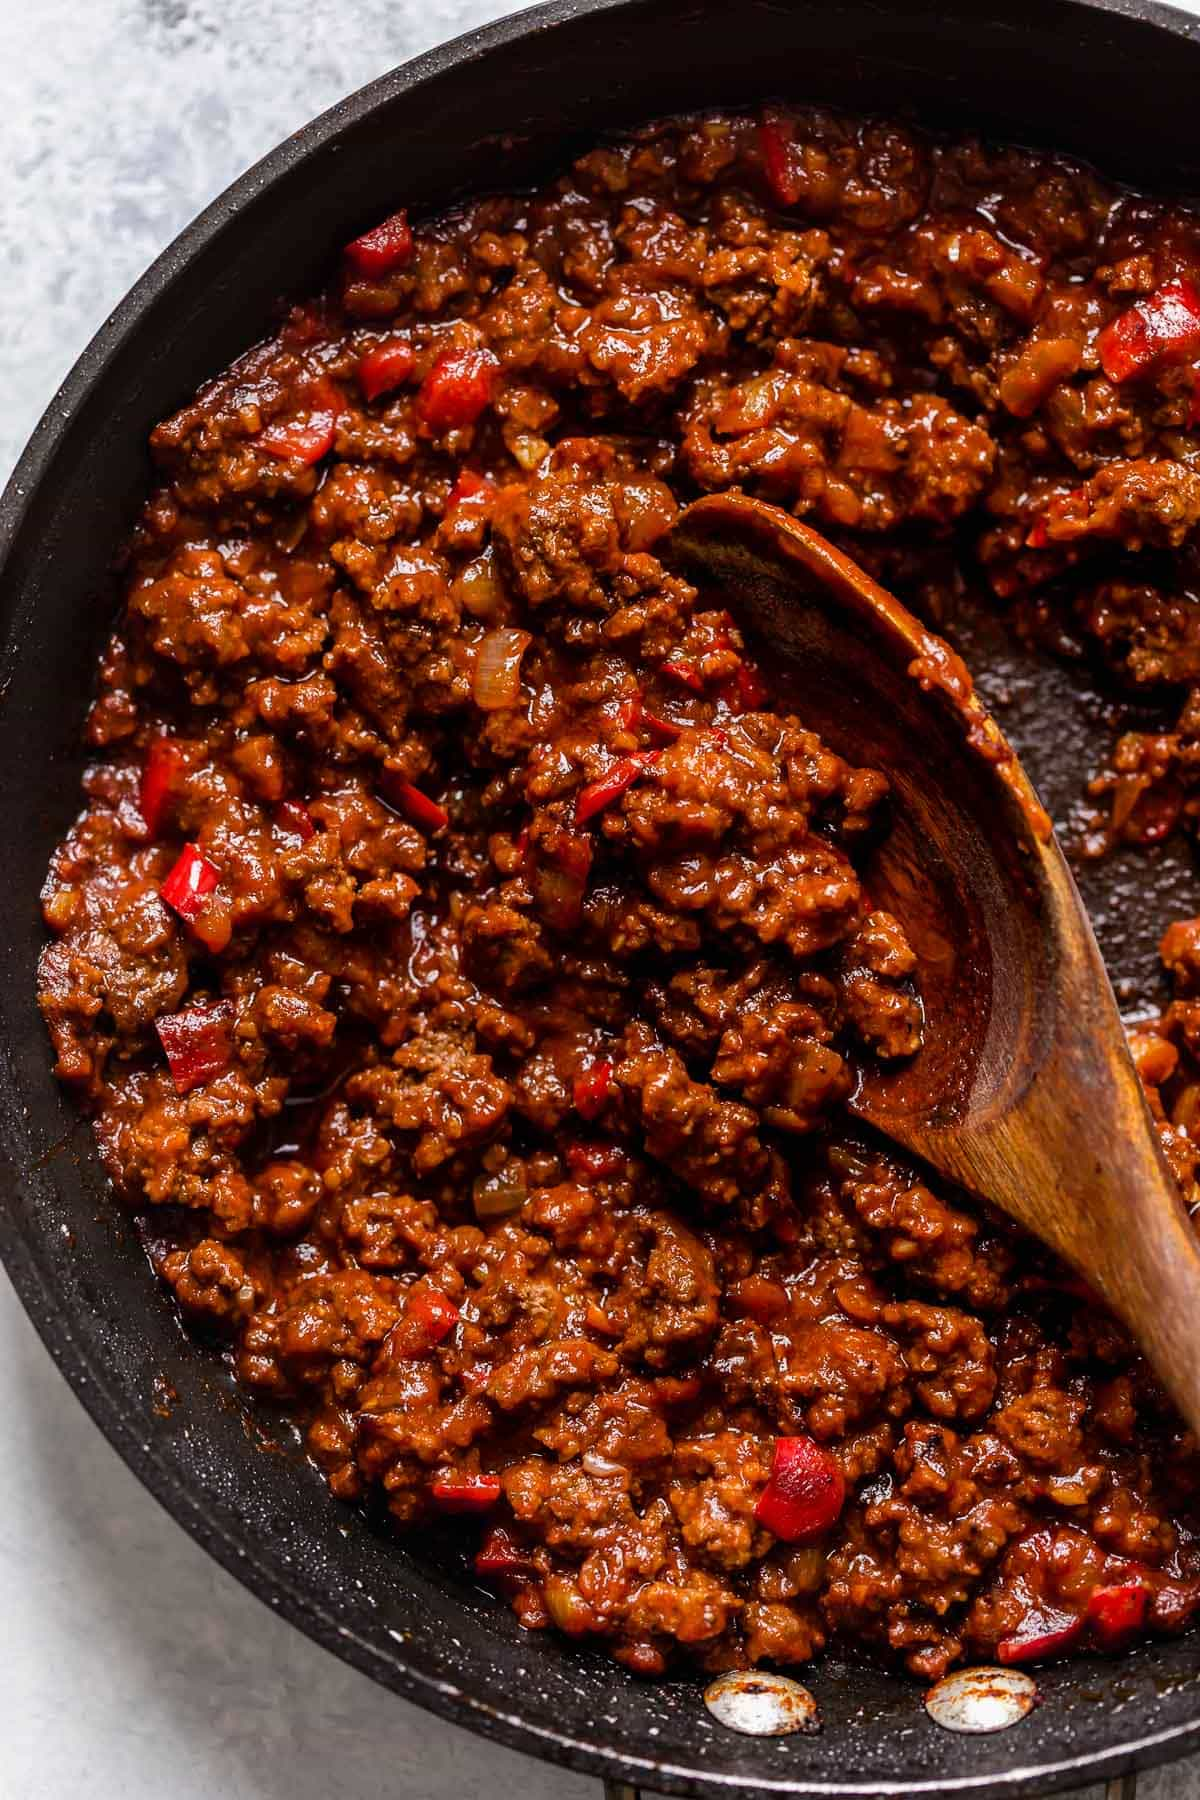 Sloppy Joe ground beef filling with sauce in a large black skillet.